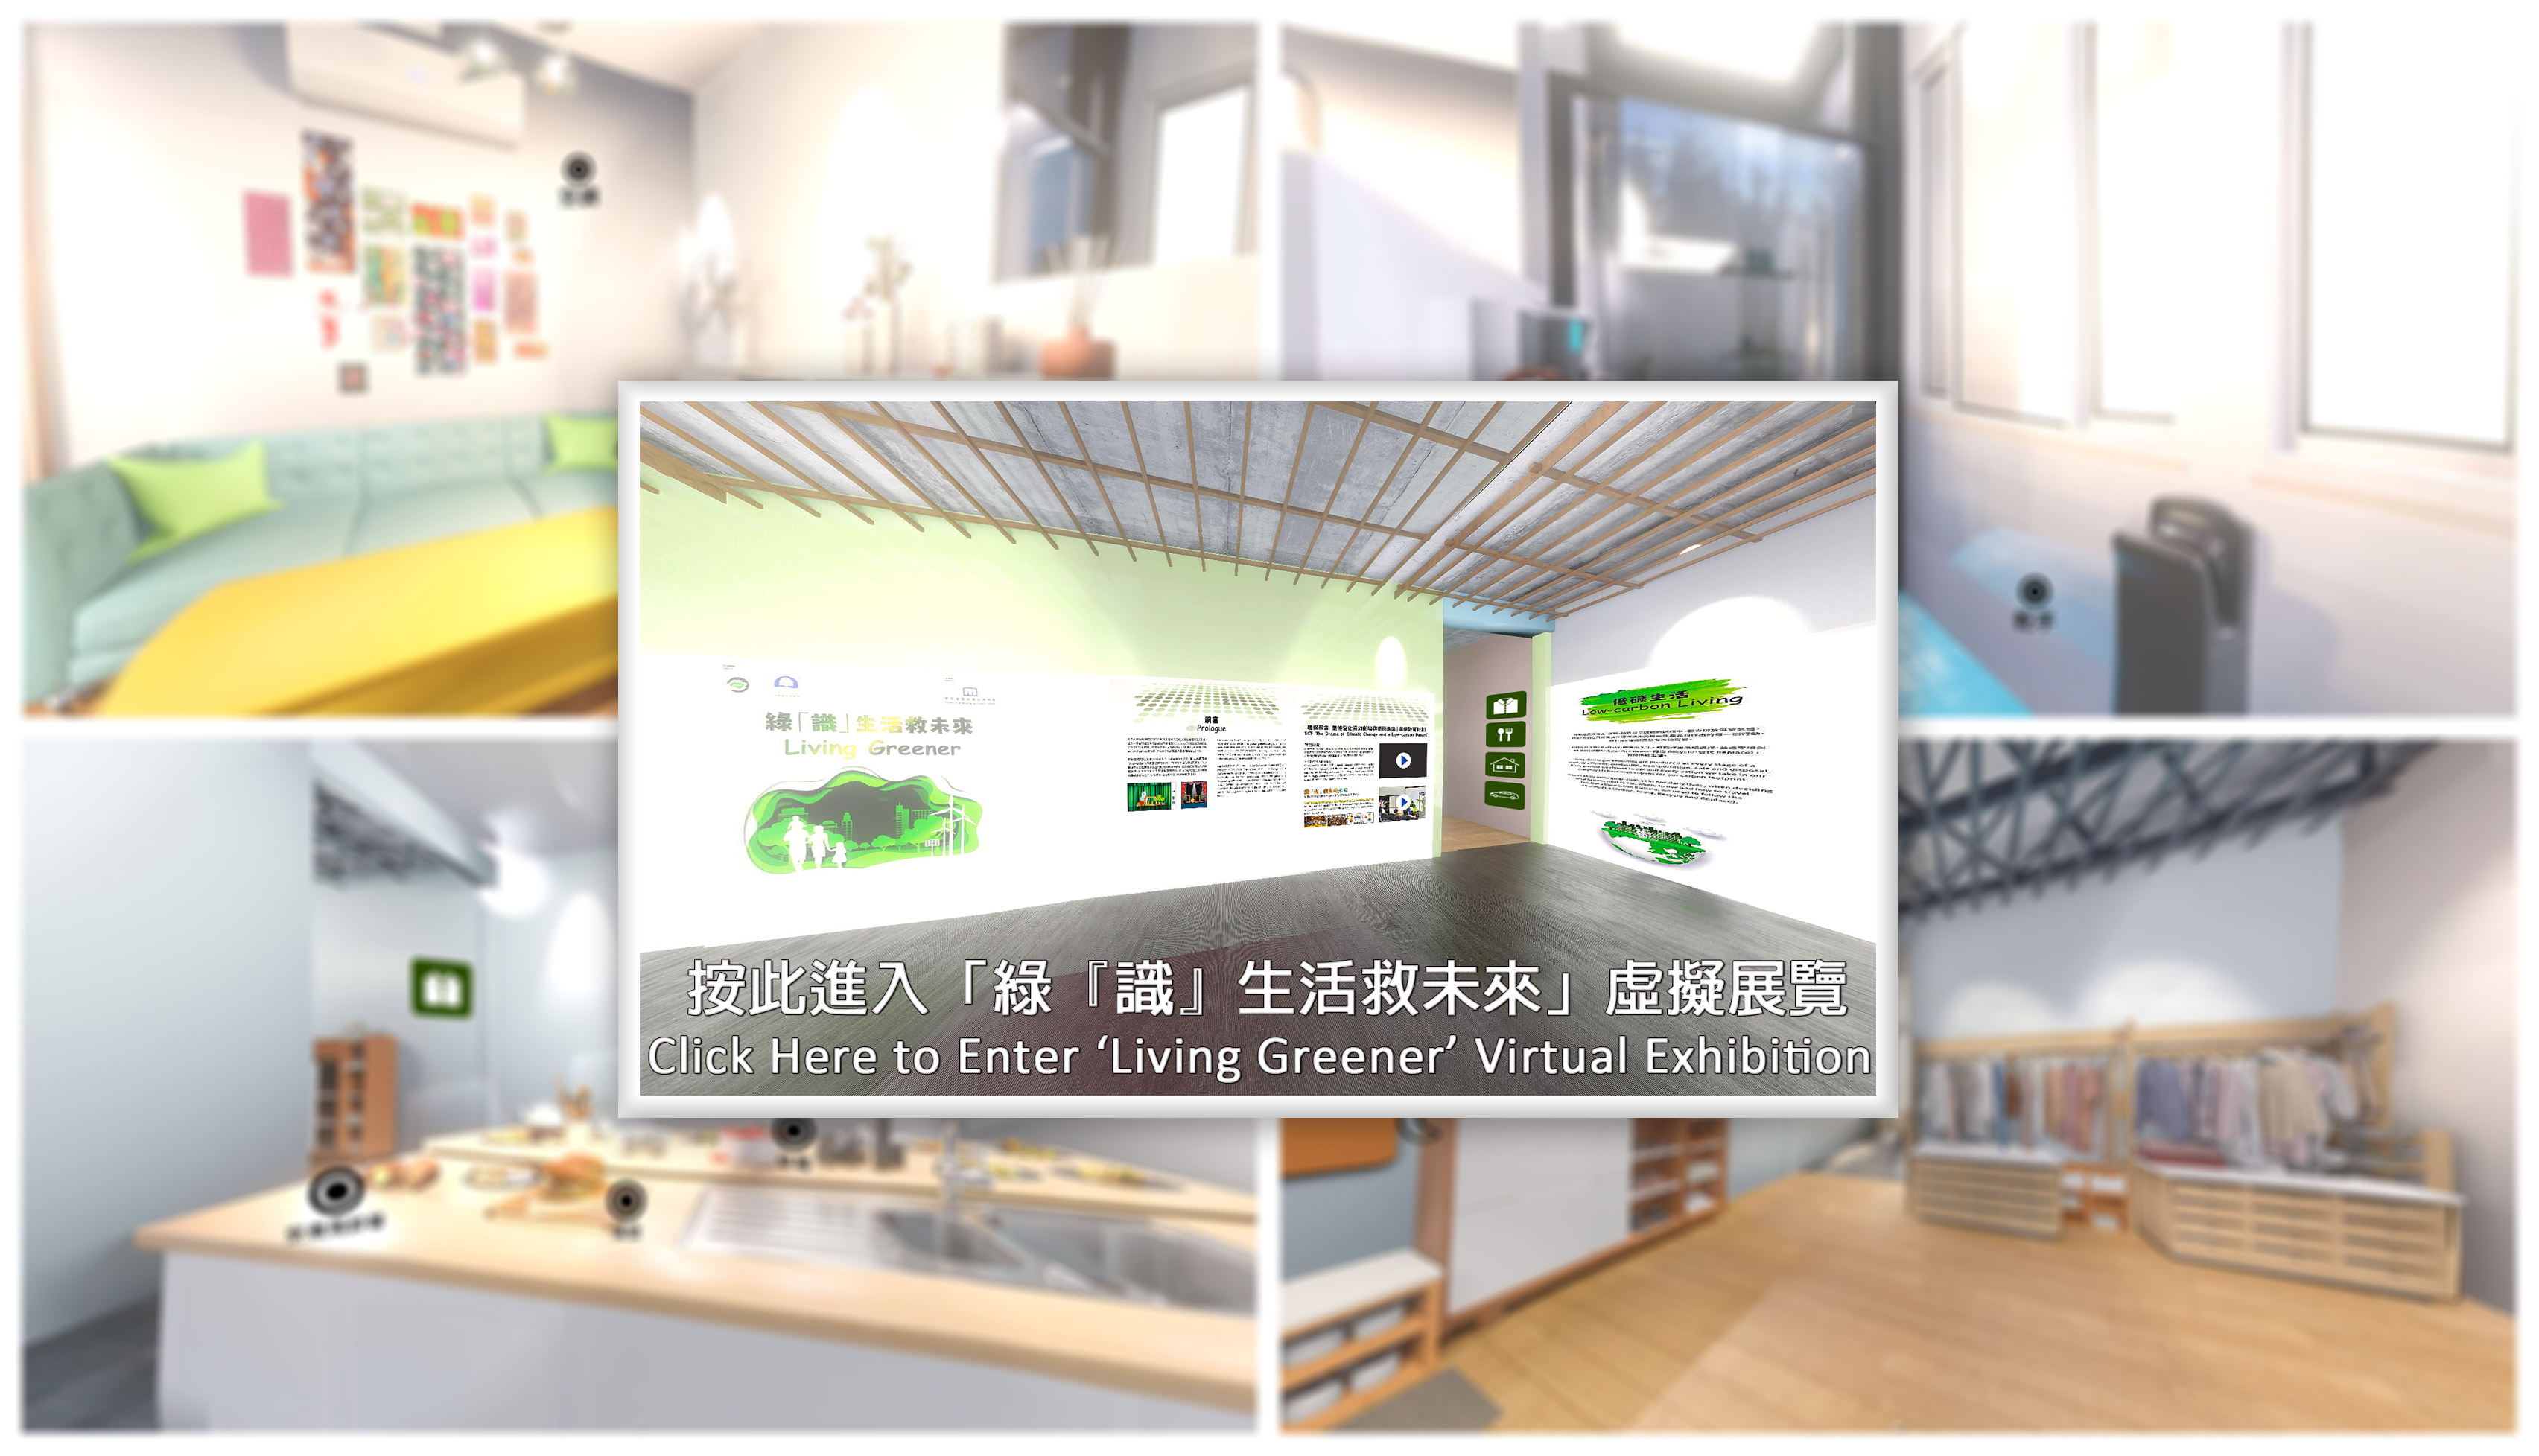 DoCC Living Greener Exhibition Promotion Image For Website v0 HN2